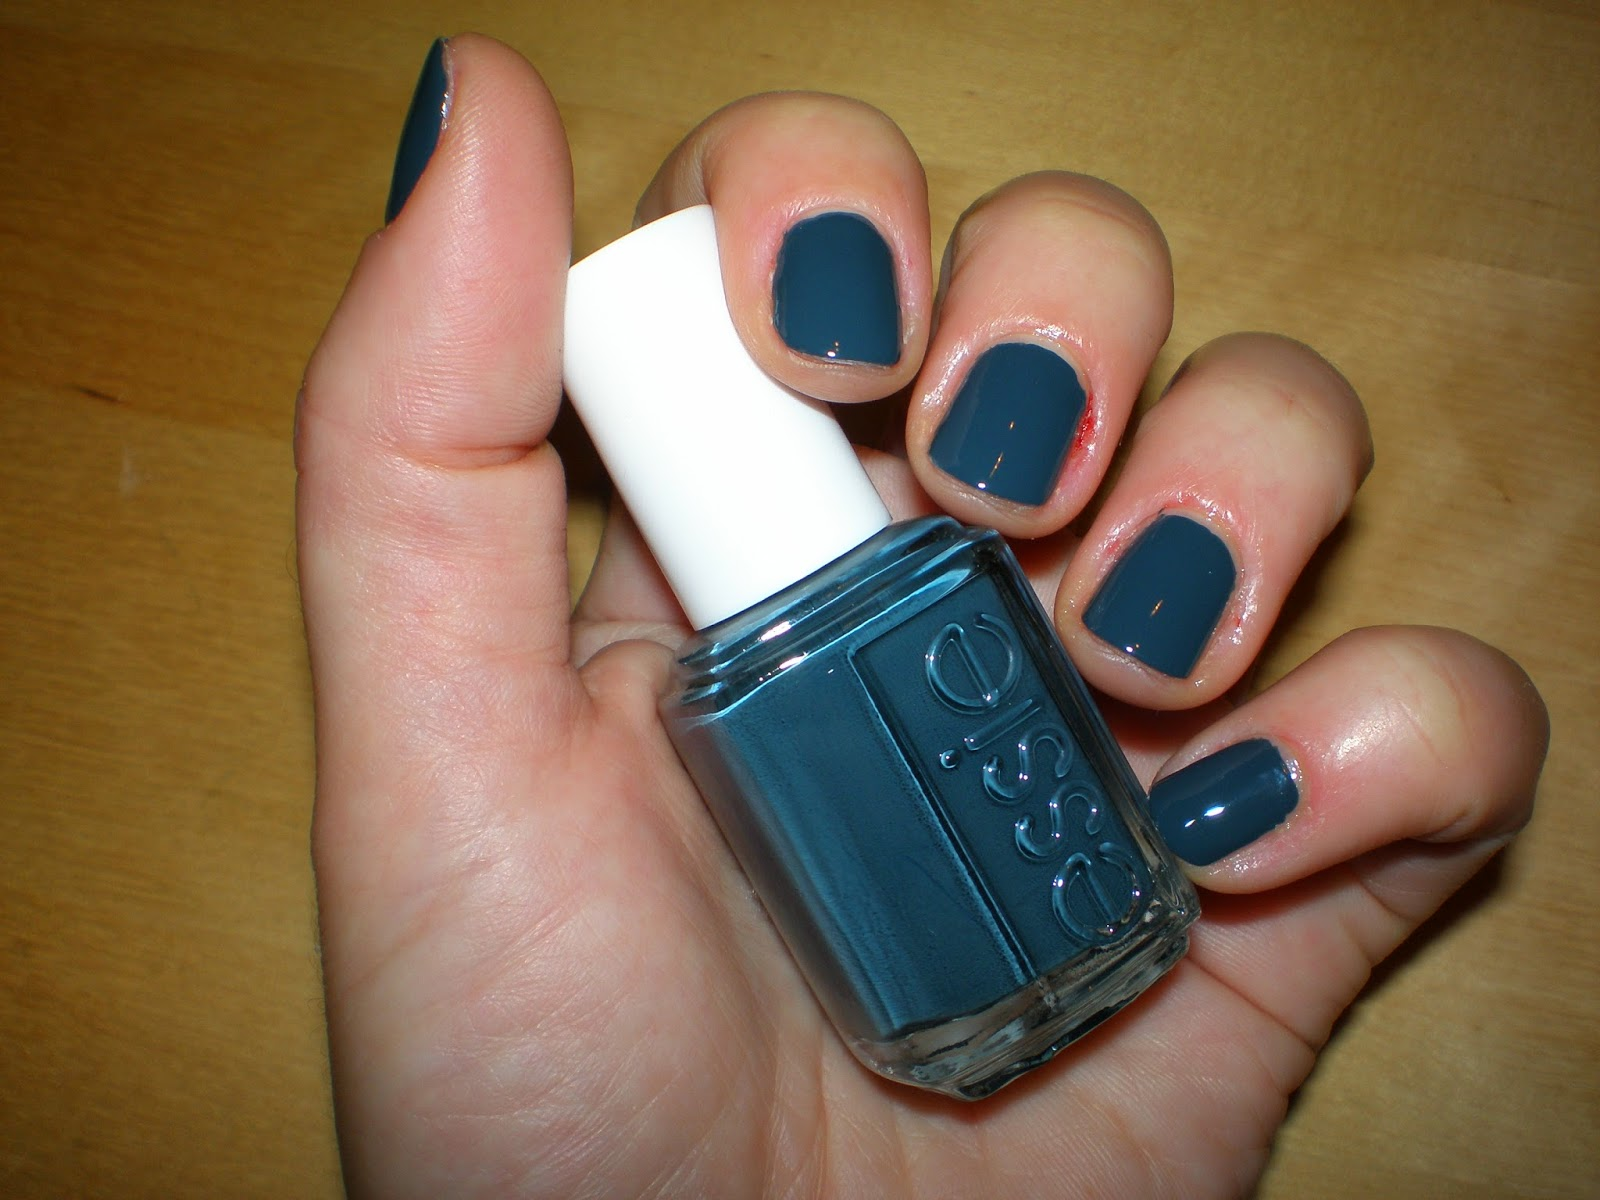 Essie Nail polish, in The Perfect Cover Up